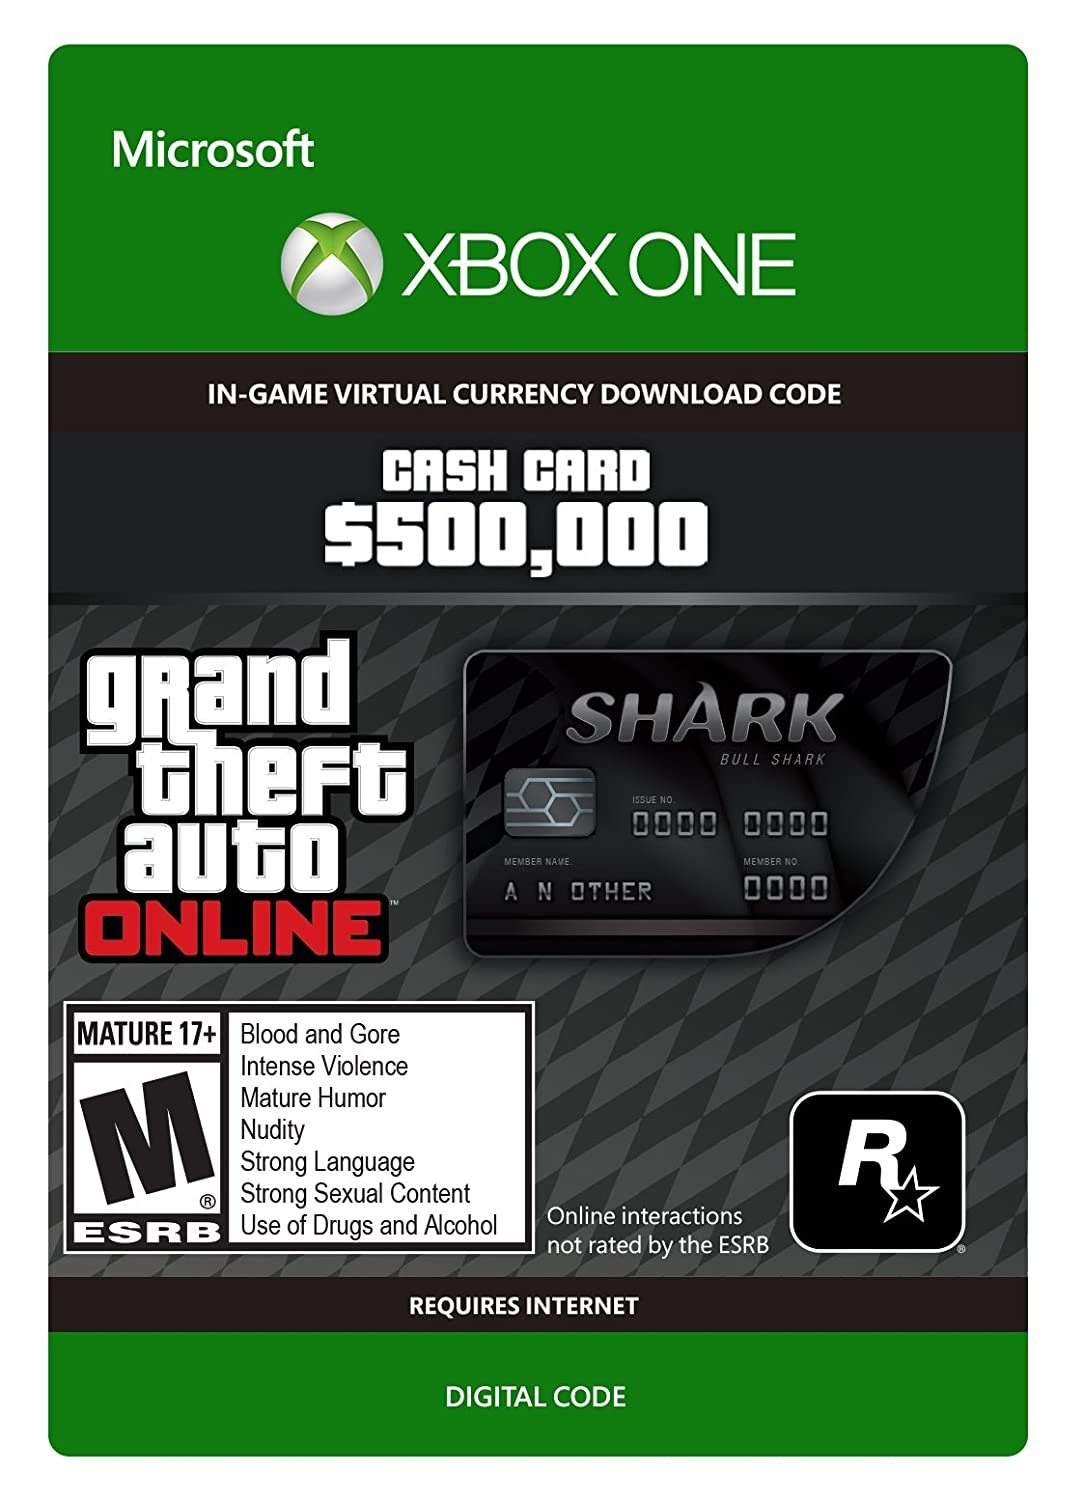 Grand Theft Auto V: Bull Shark Cash Card for Xbox One (Digital Code) for Xbox One image